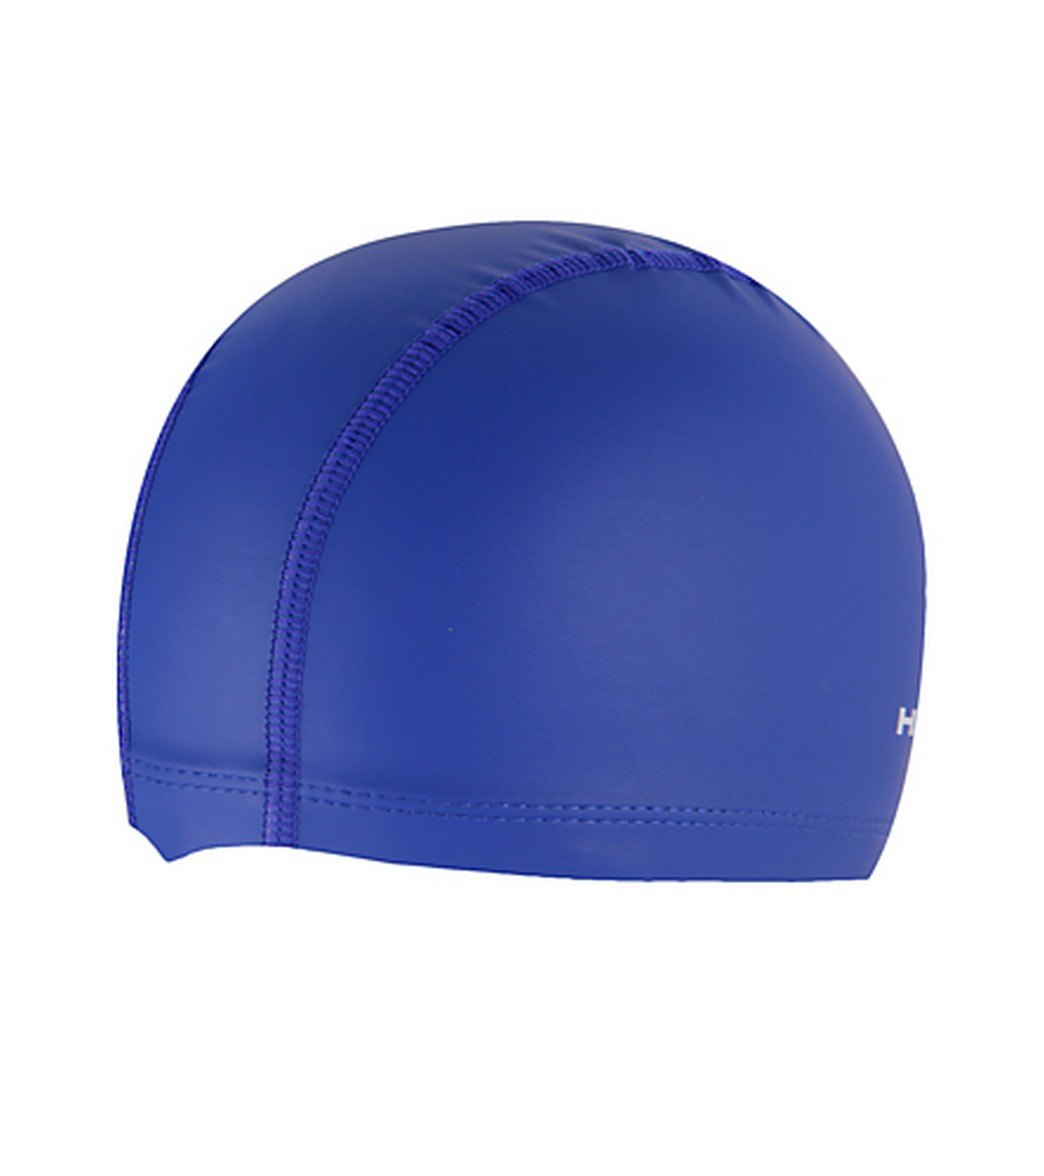 68606084ff2 HEAD Swimming Lycra Swim Cap at SwimOutlet.com